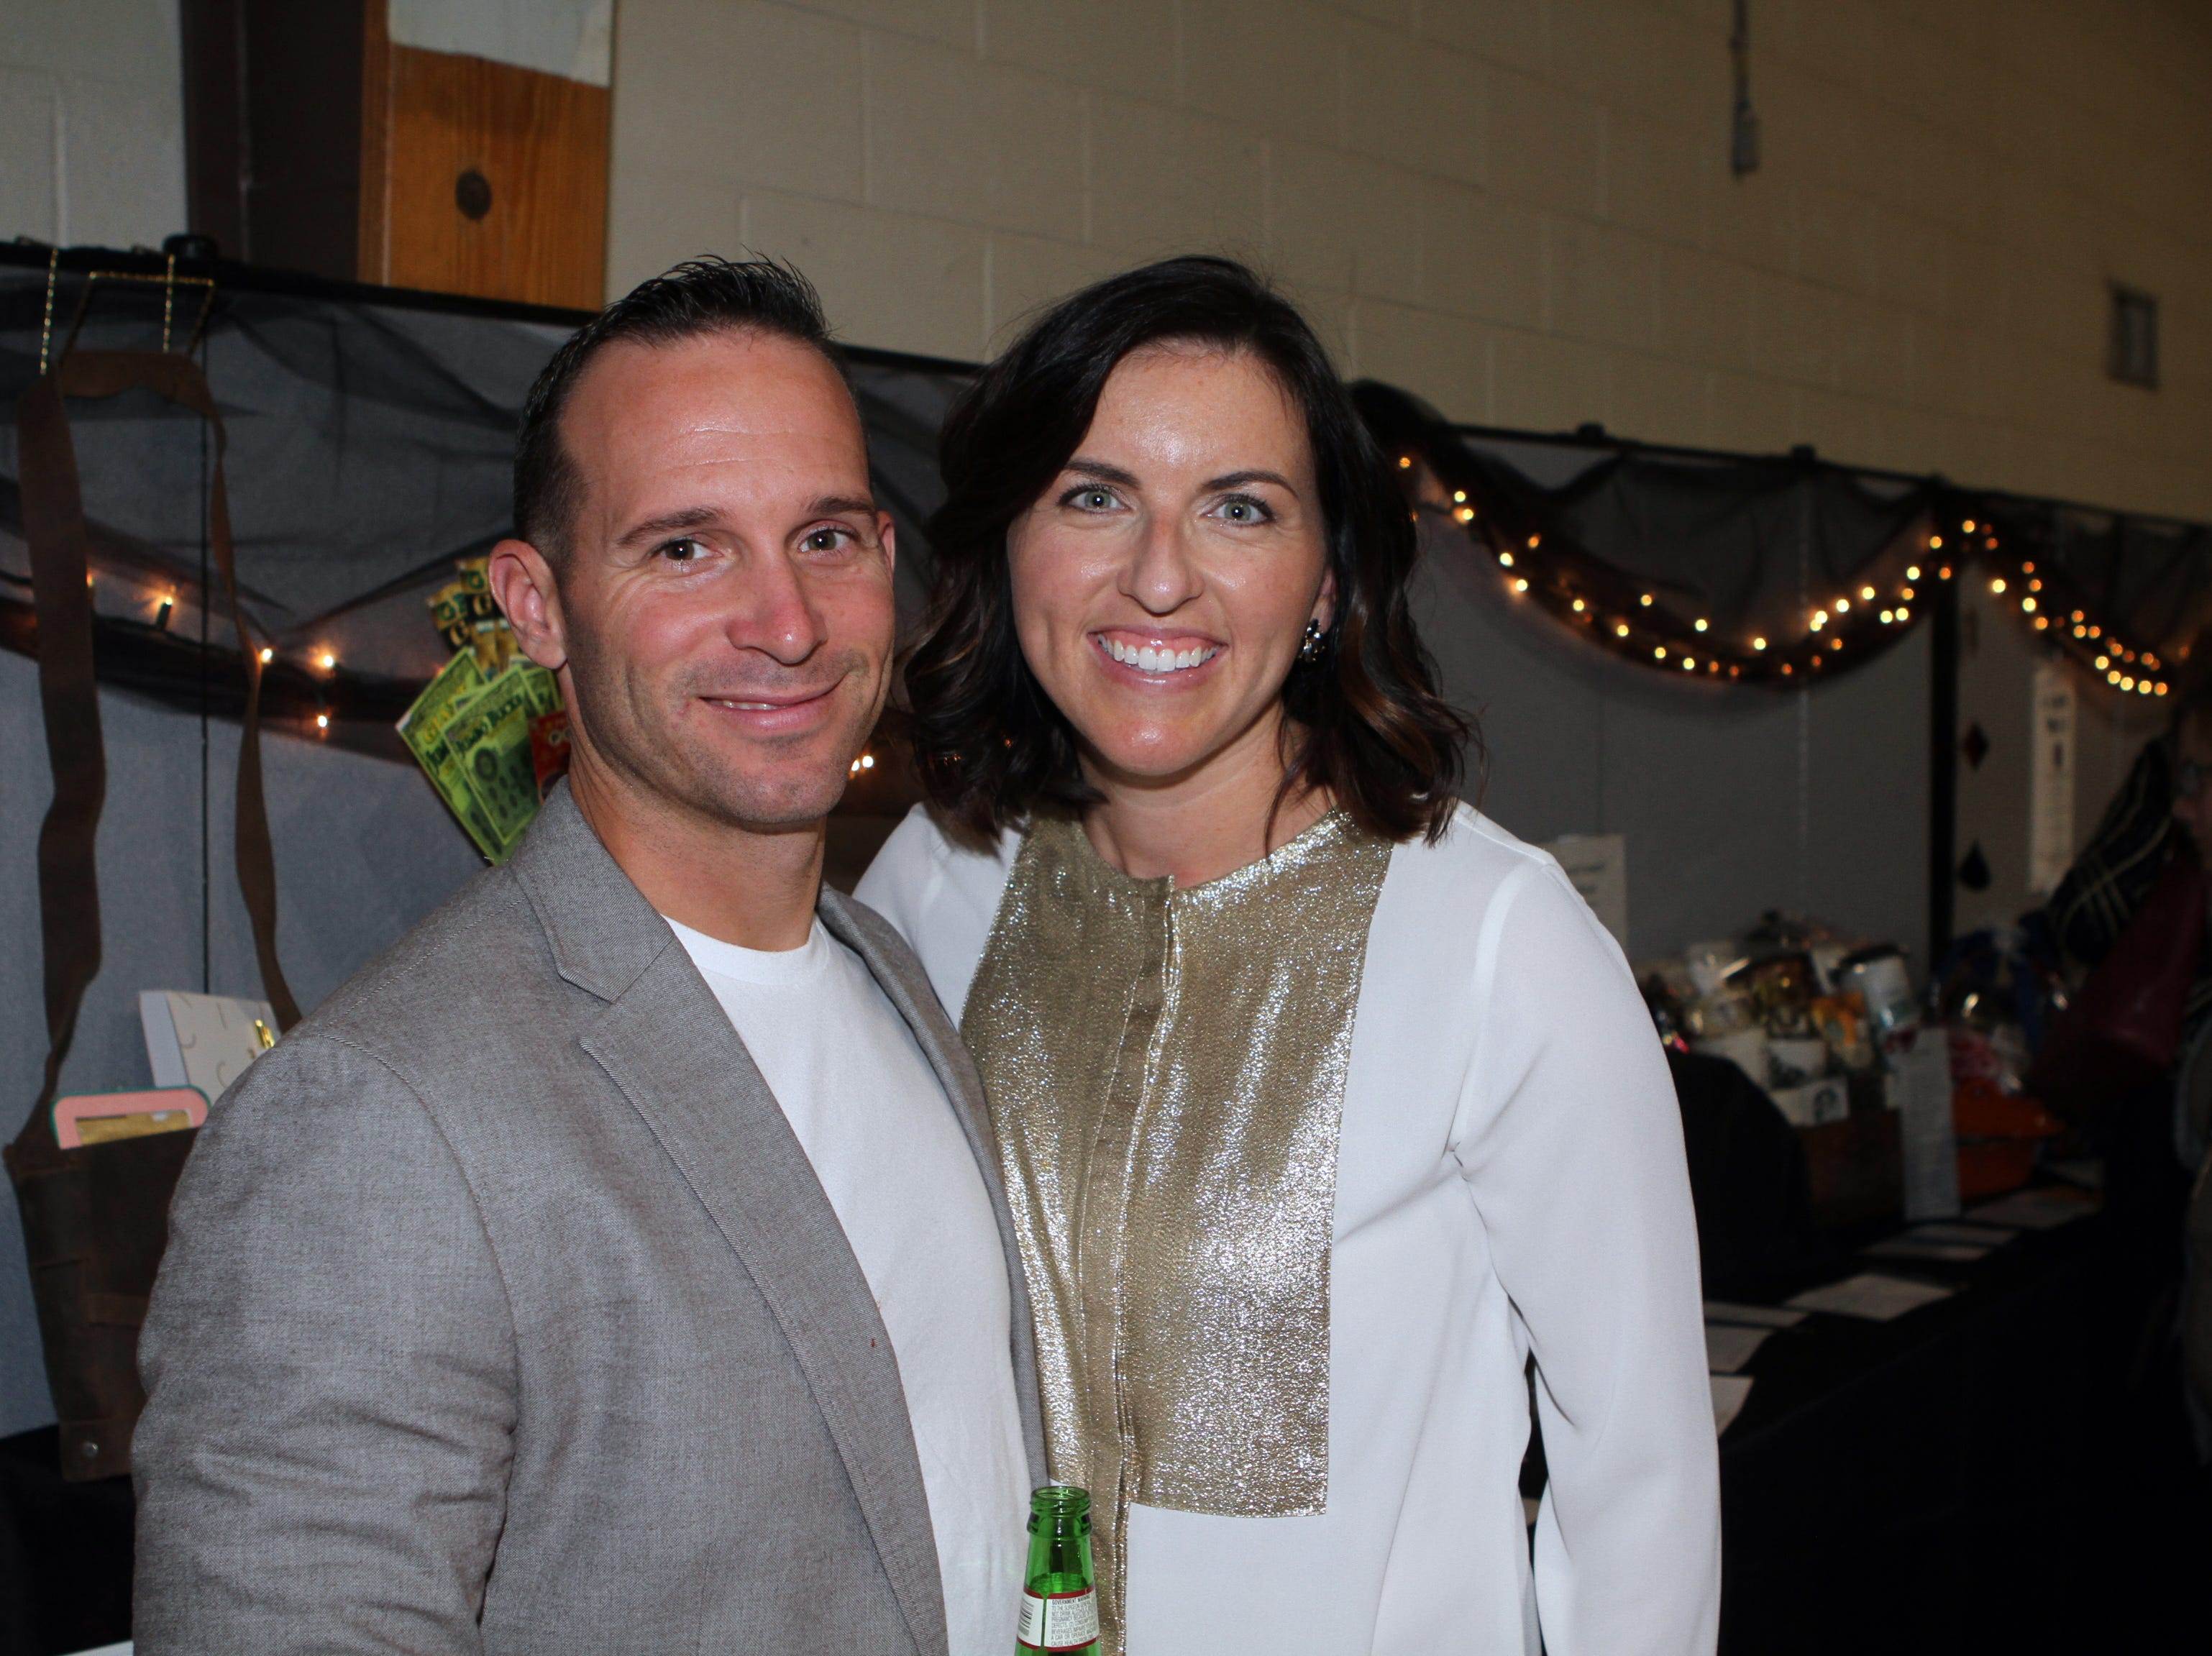 Tim and Cassie Gibbons at Casino Night at Immaculate Conception School on Saturday, Nov. 3, 2018.